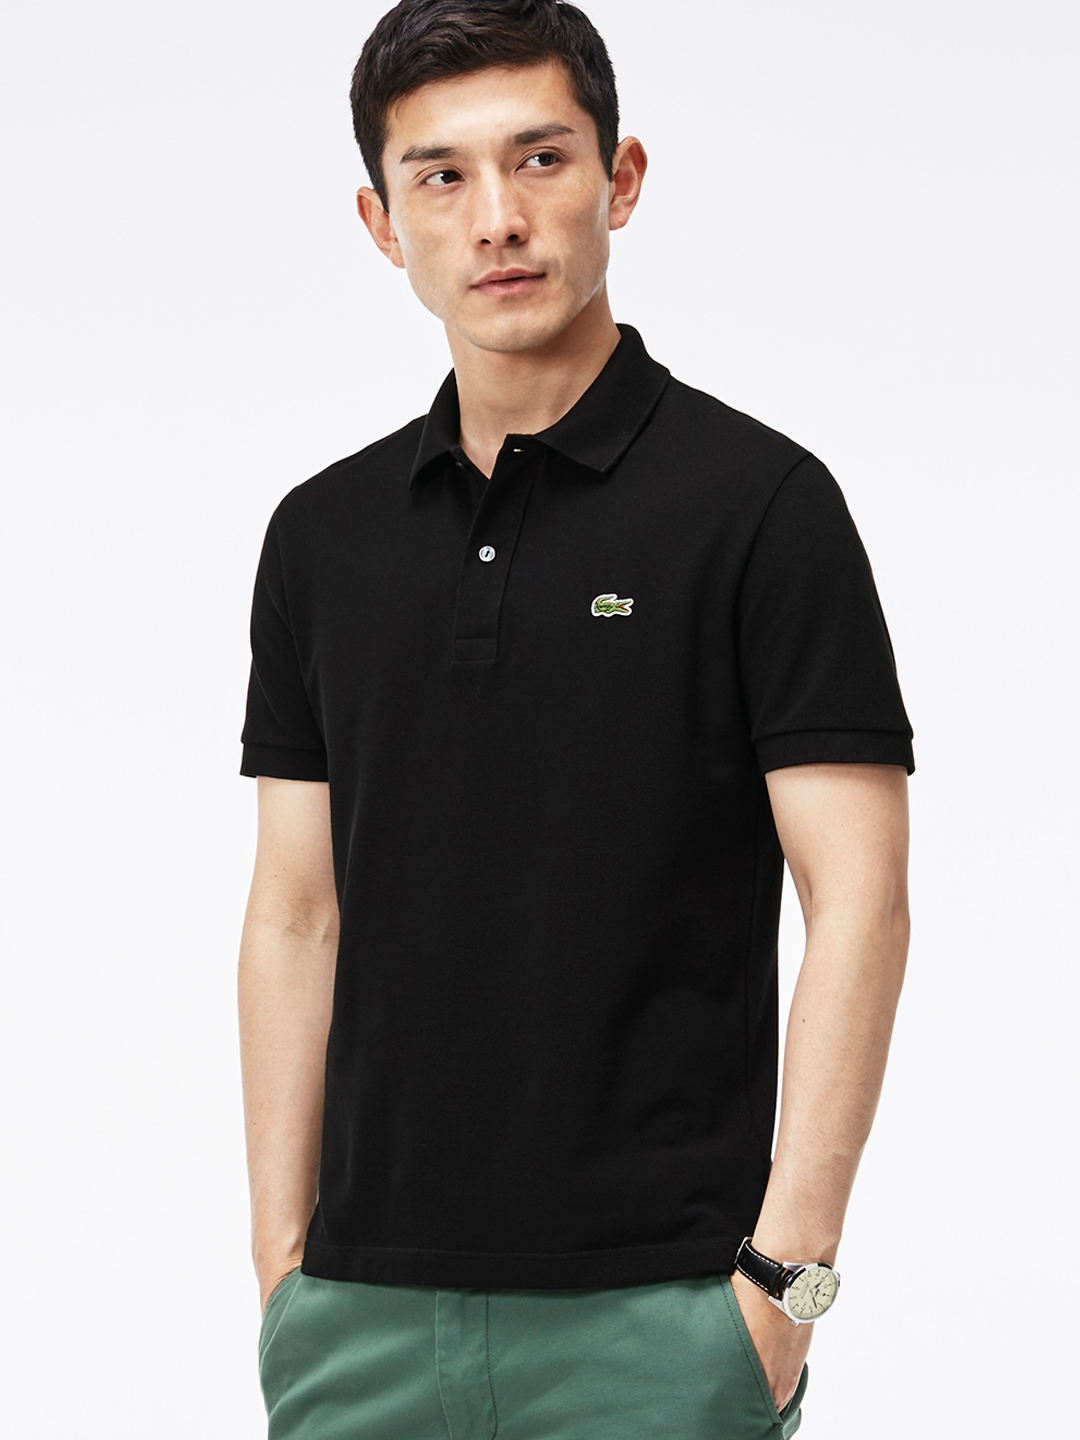 35f06c68801 Buy Lacoste Black Slim Fit Petit Pique Polo - Tshirts for Men